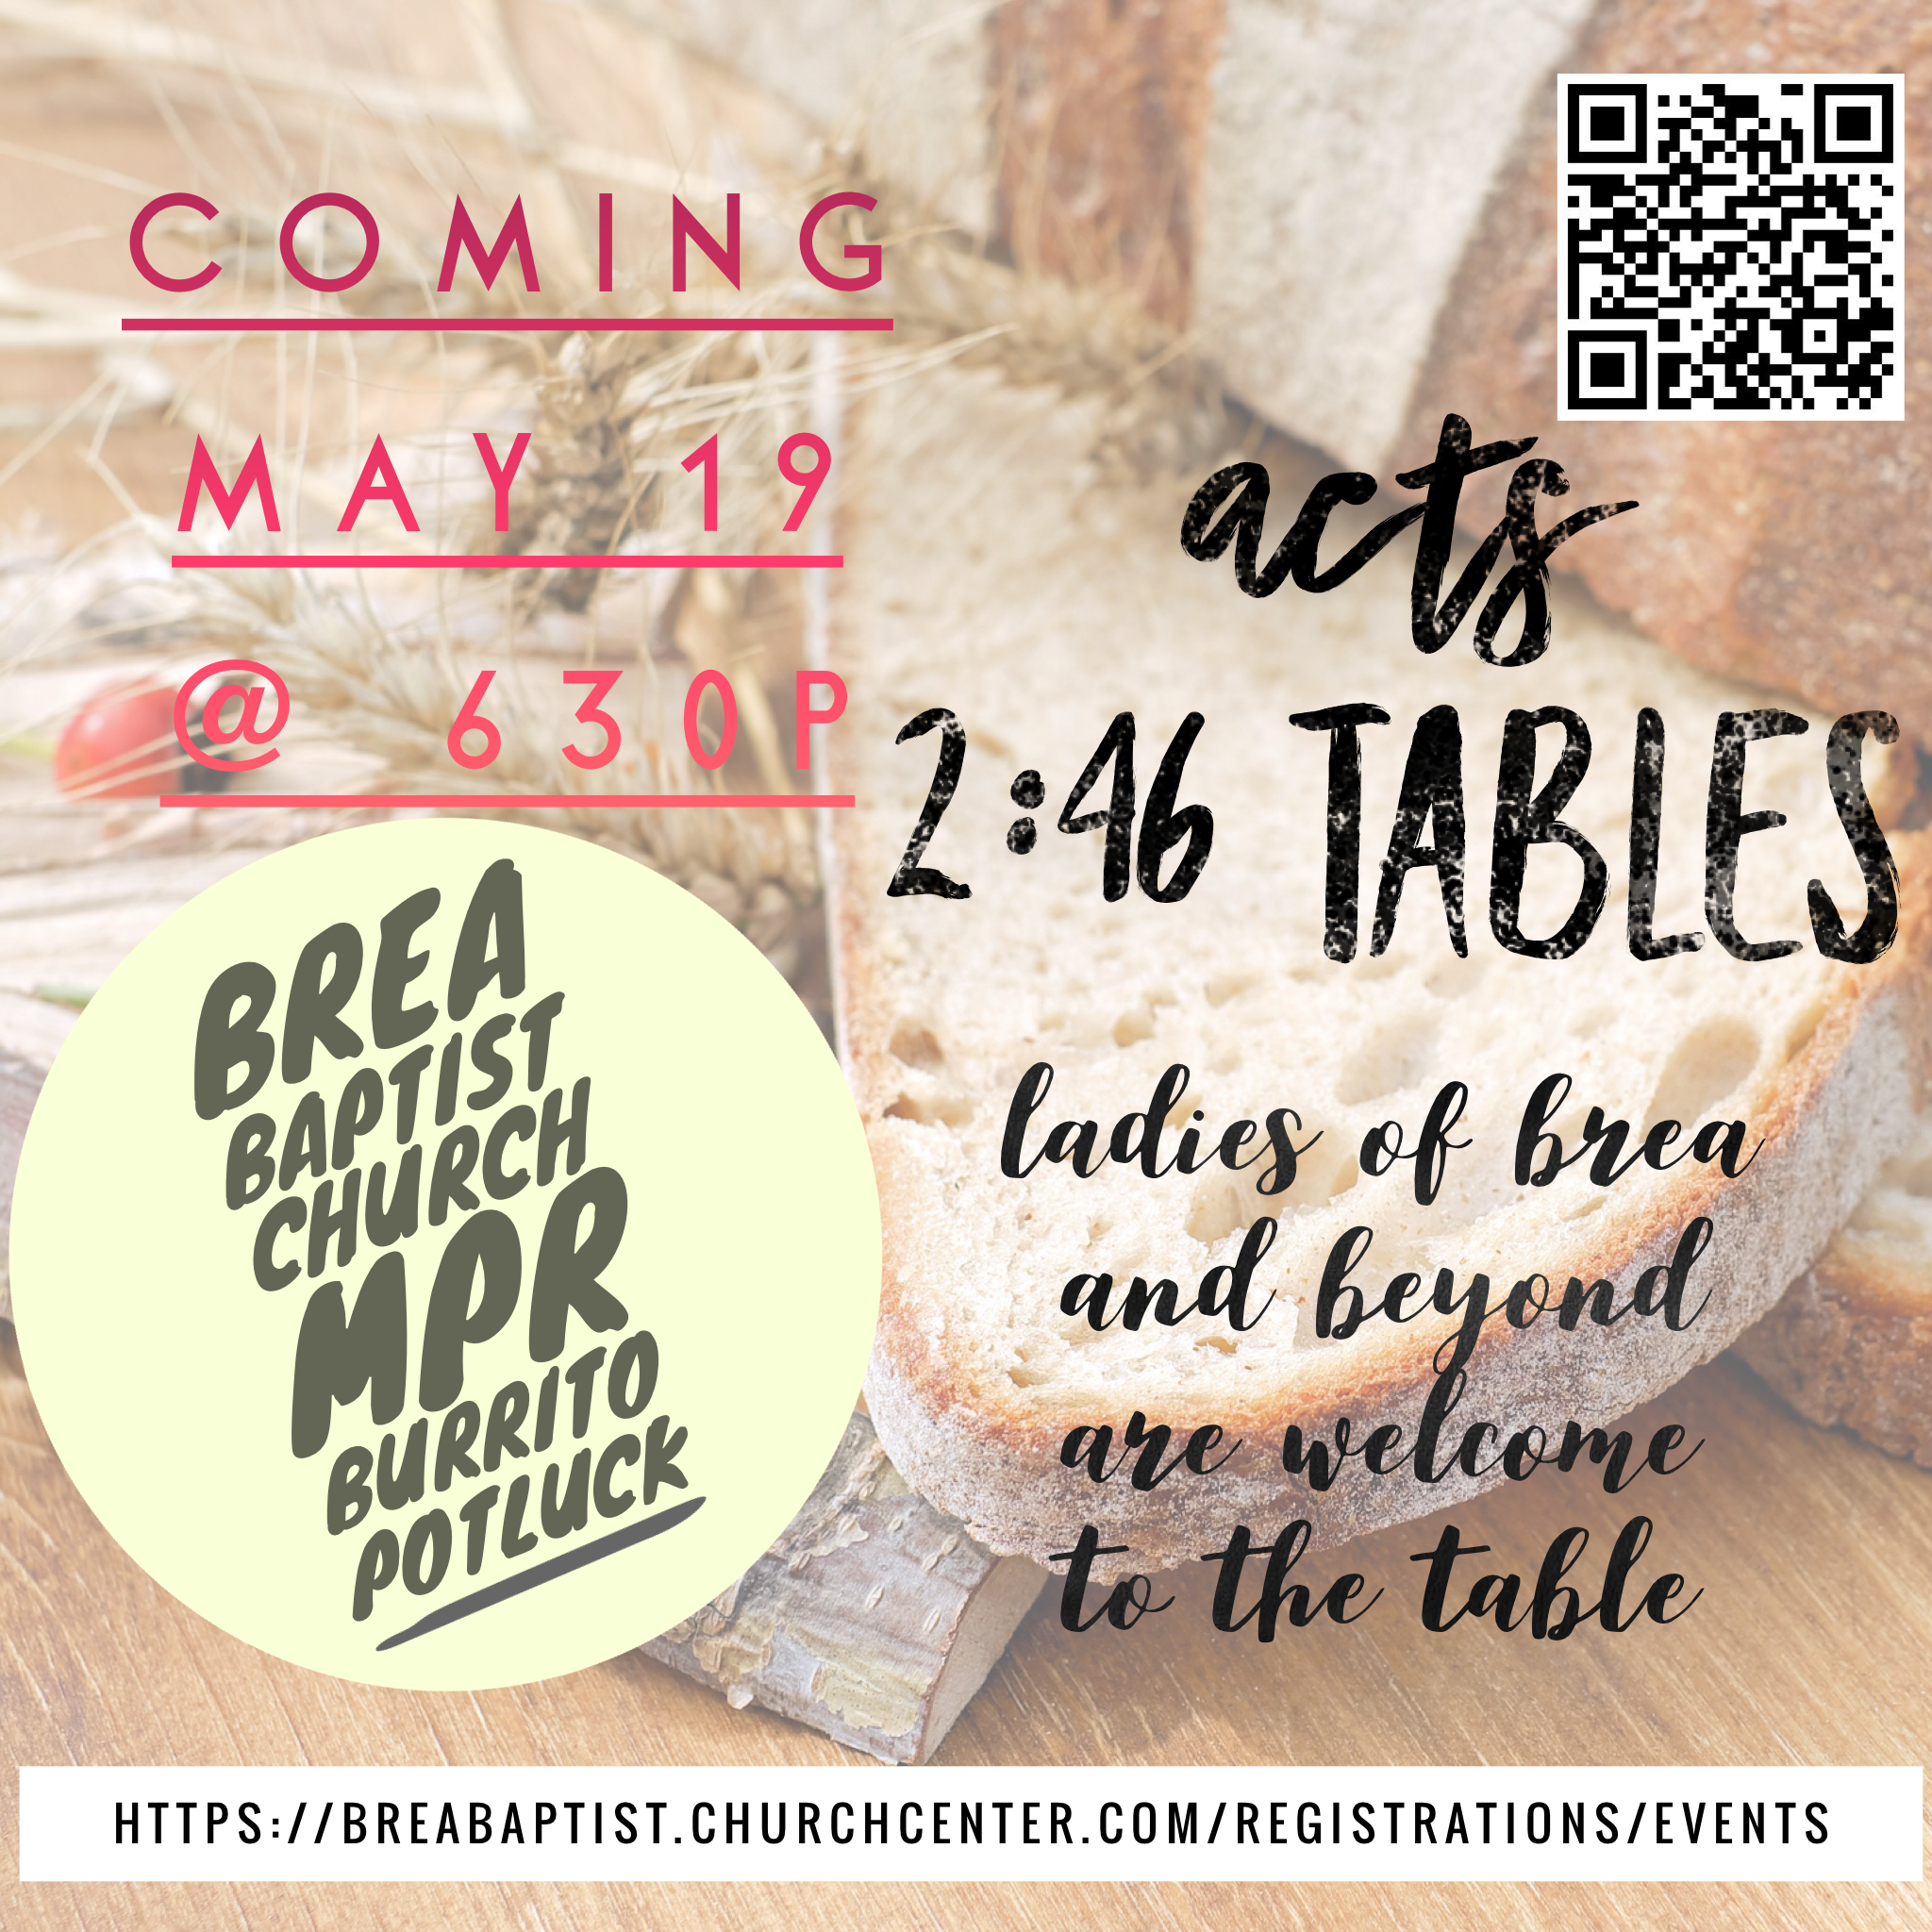 Acts 246 table ad